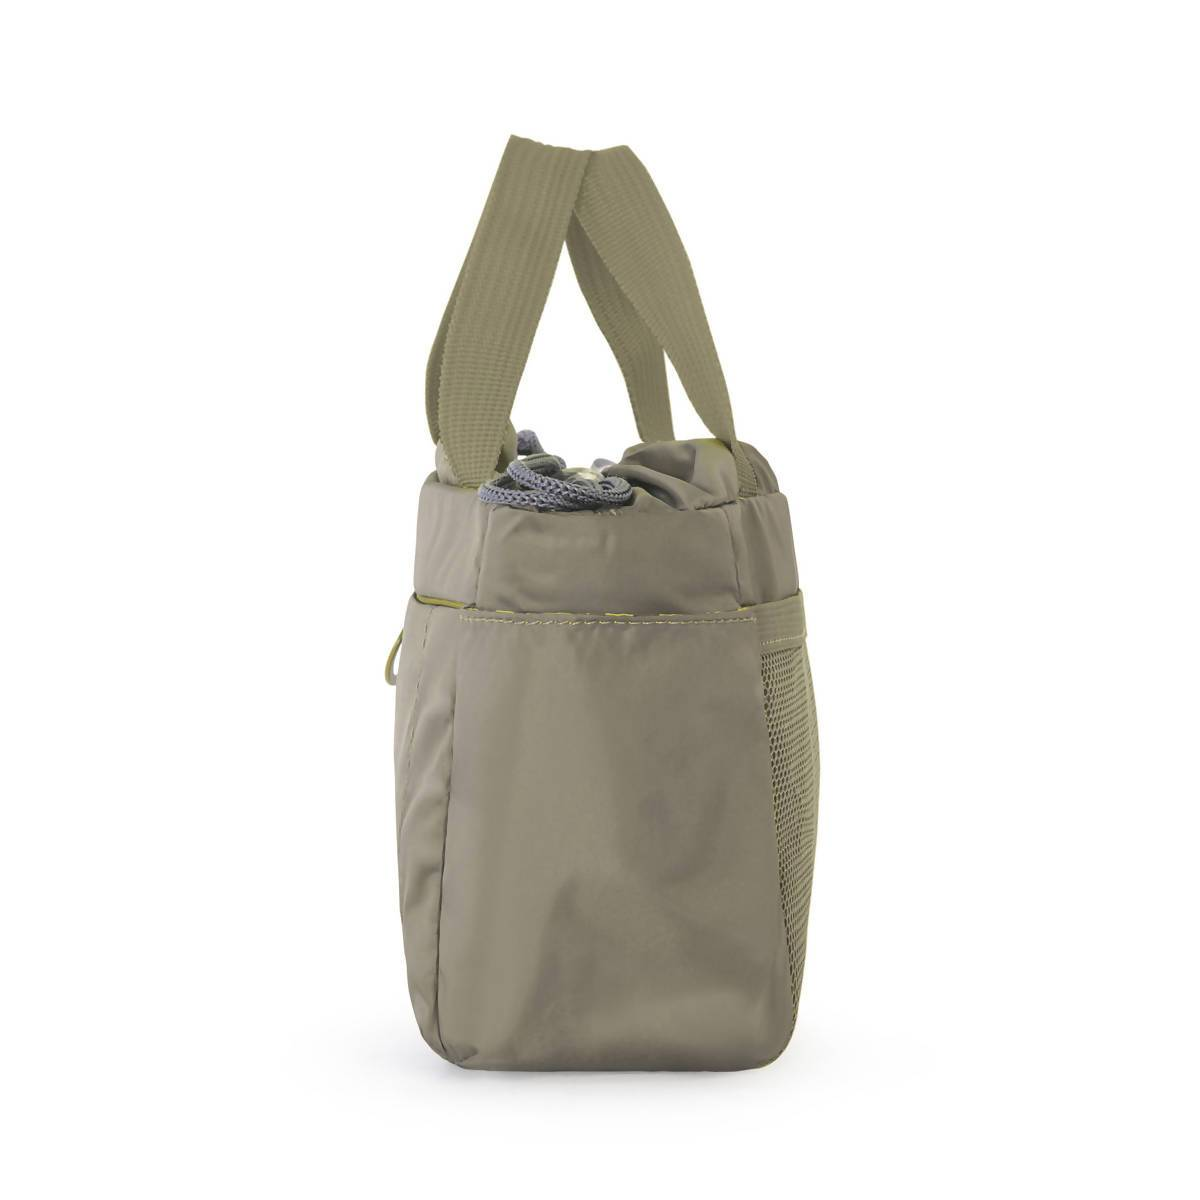 Bag In A Bag Organizer - New Arrivals - Zigzagme - Naiise